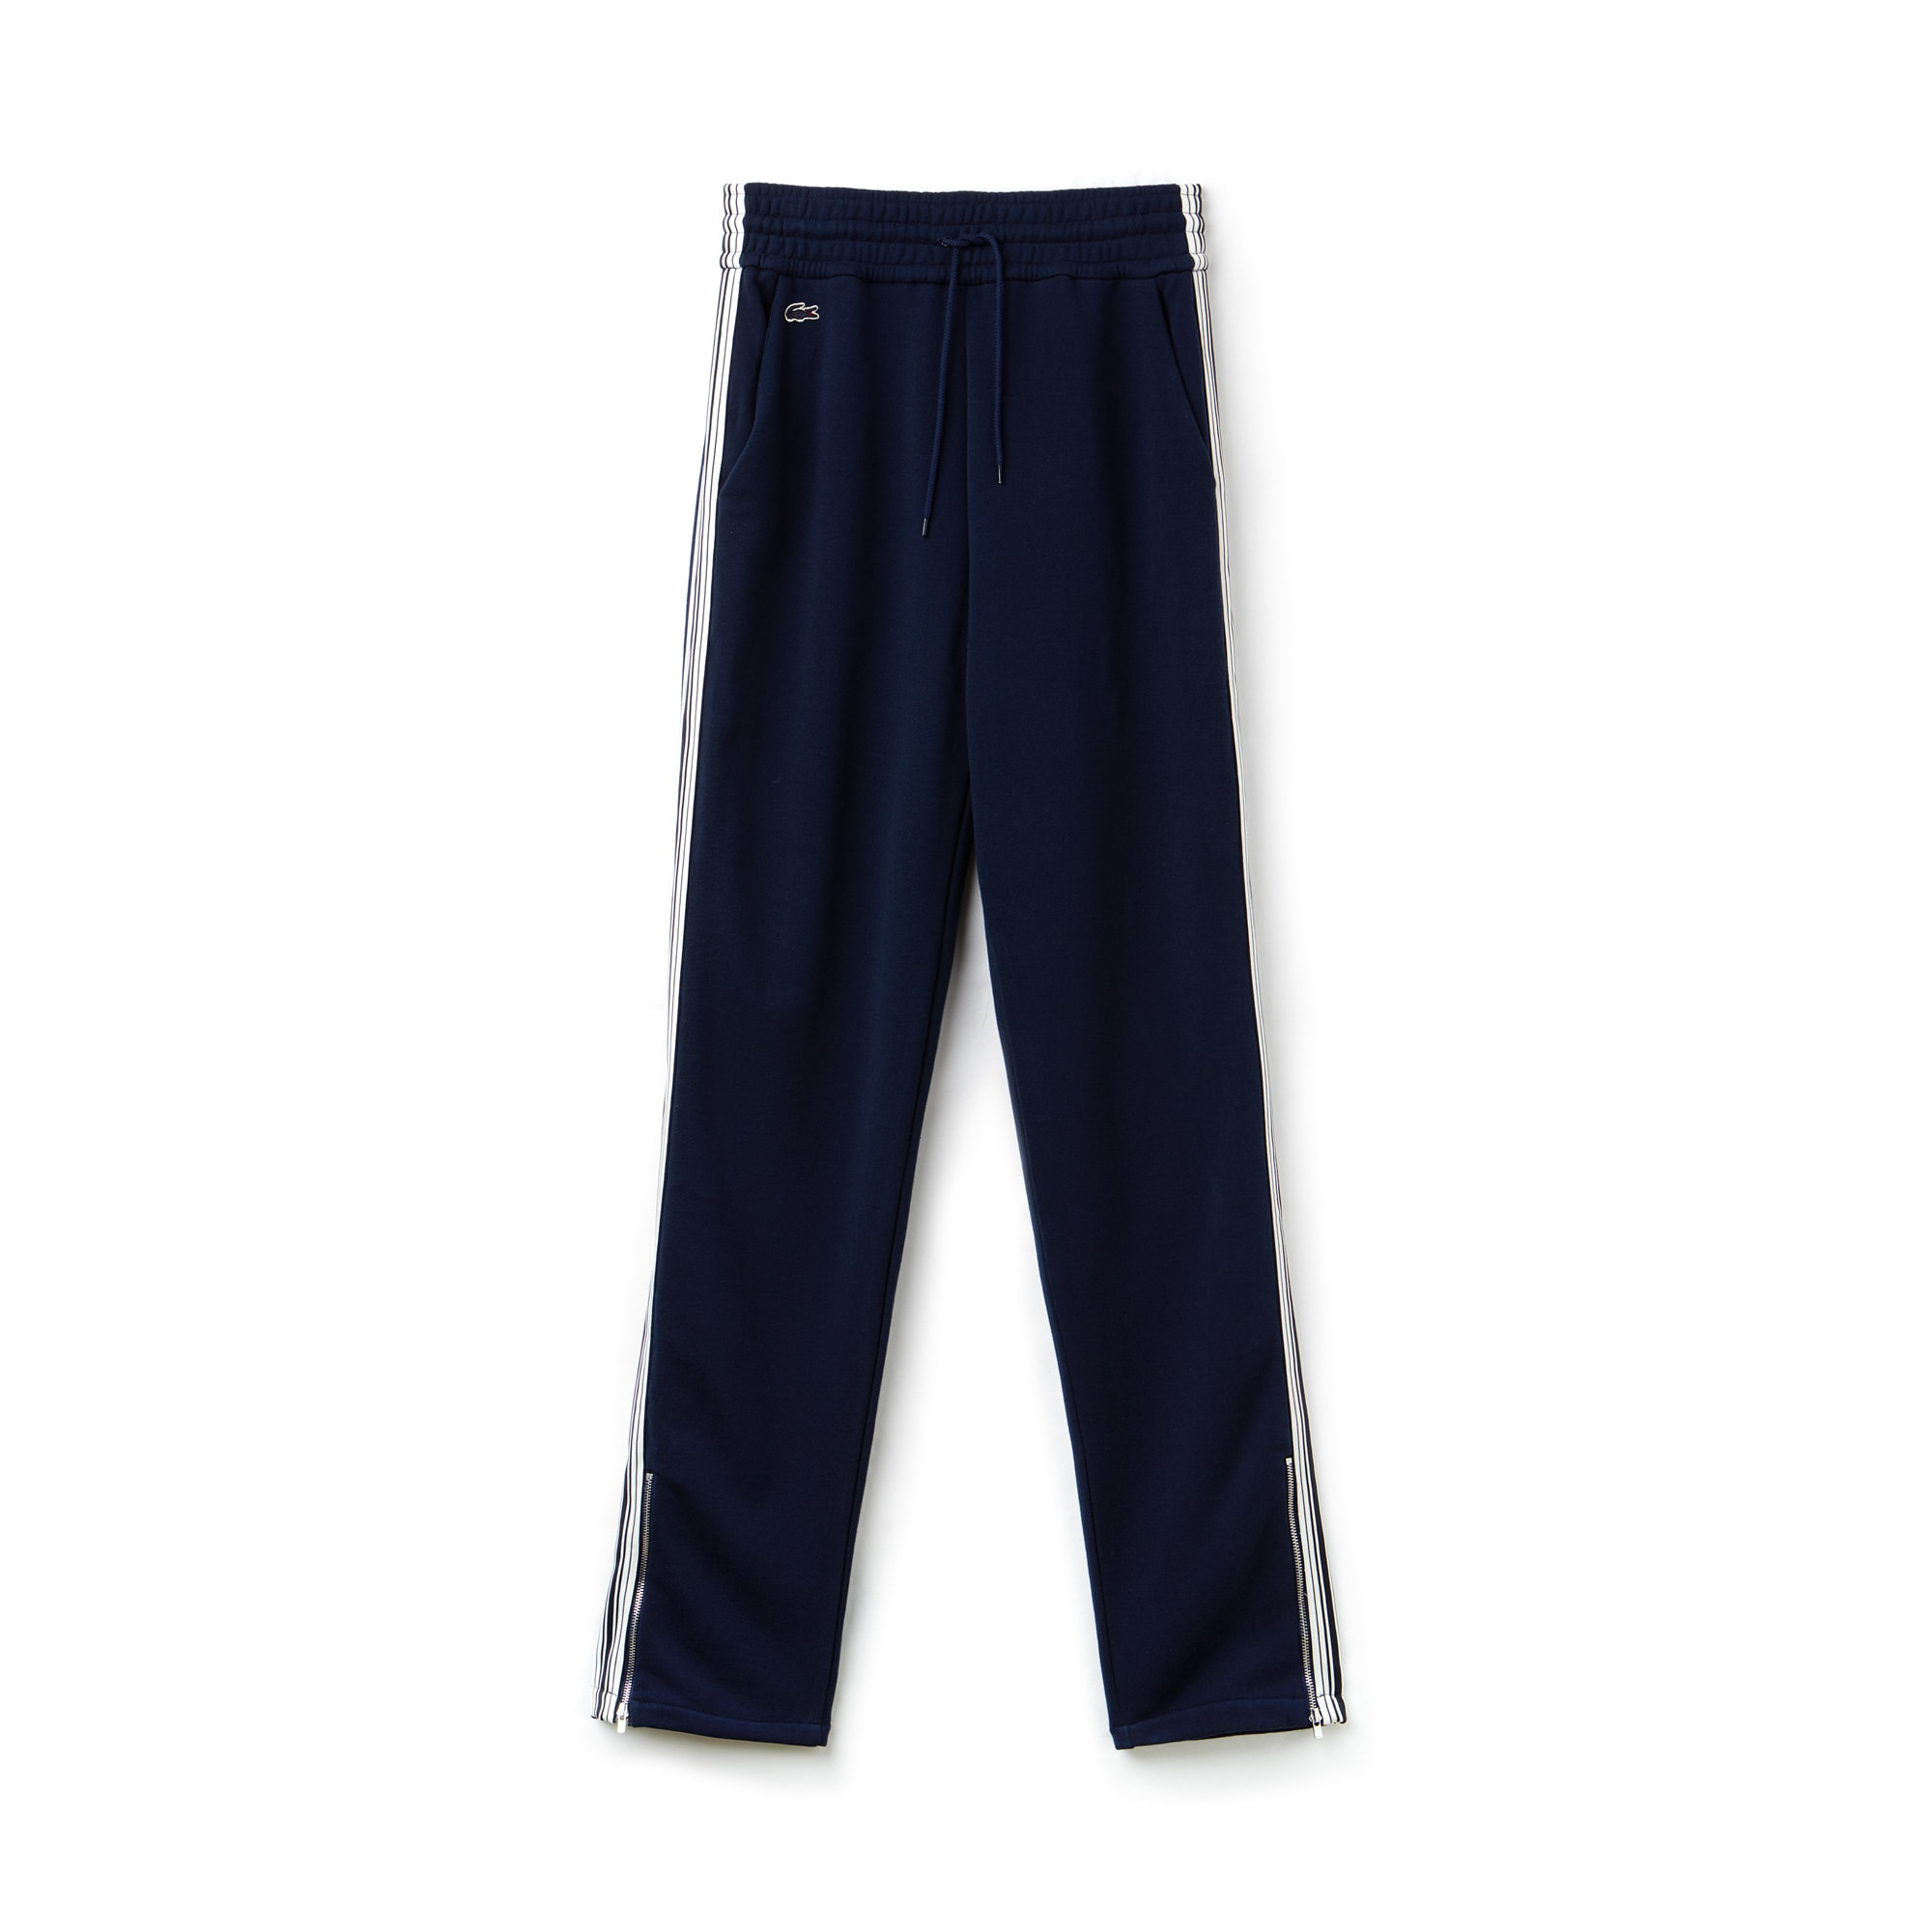 Women's Contrast Urban Sweatpants